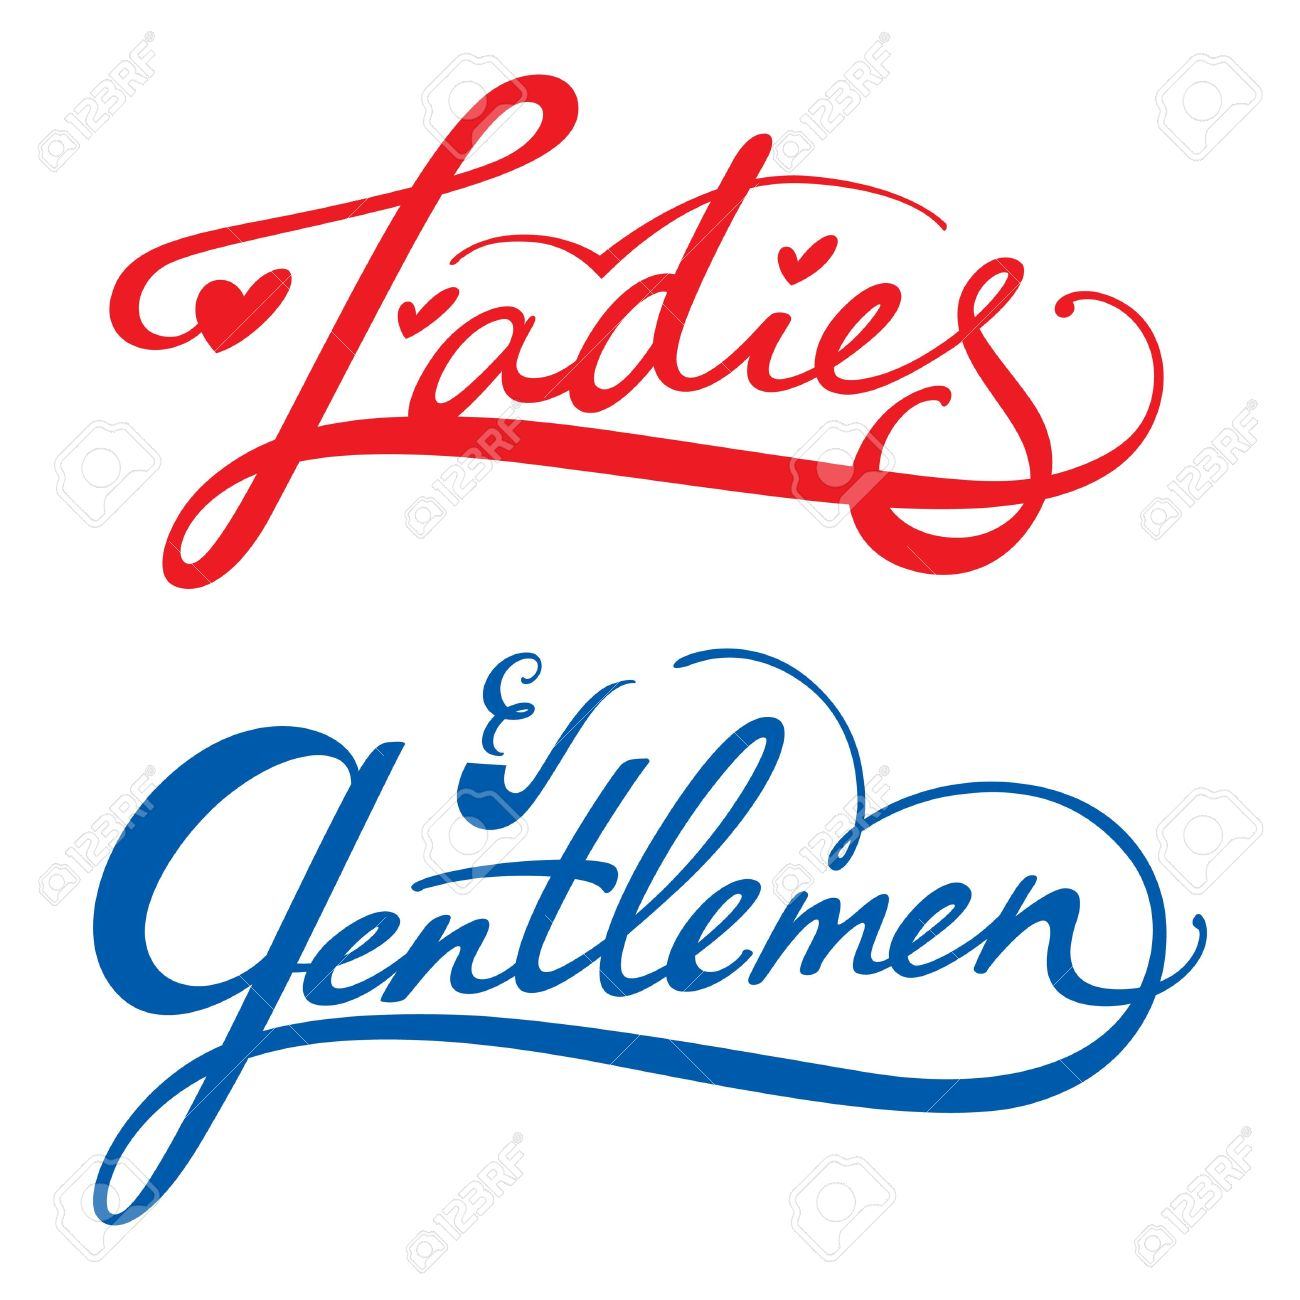 Ladies Gentlemen vector inscription man woman dressing rest room toilet Stock Vector - 11915403